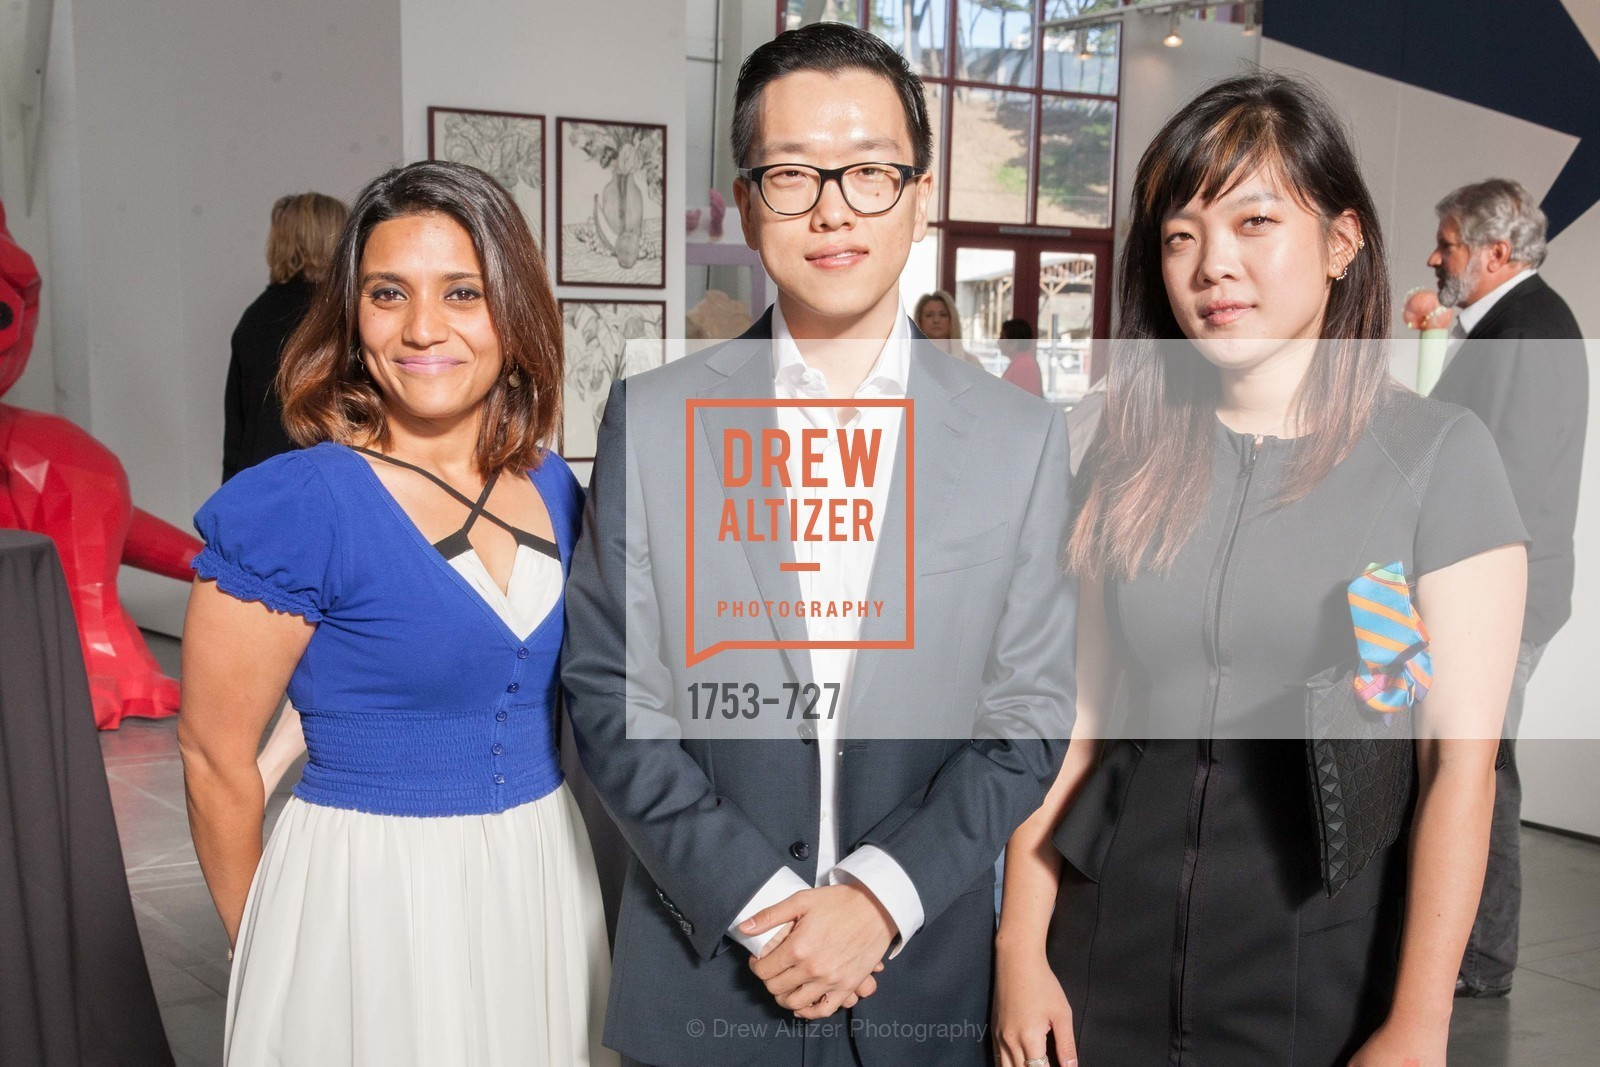 Silva Ahmad, Rusty Chung, Grace Kim, SAN FRANCISCO ART INSTITUTE Gala Honoring Art Visionary and Advocate ROSELYNE CHROMAN SWIG, US, May 14th, 2015,Drew Altizer, Drew Altizer Photography, full-service agency, private events, San Francisco photographer, photographer california